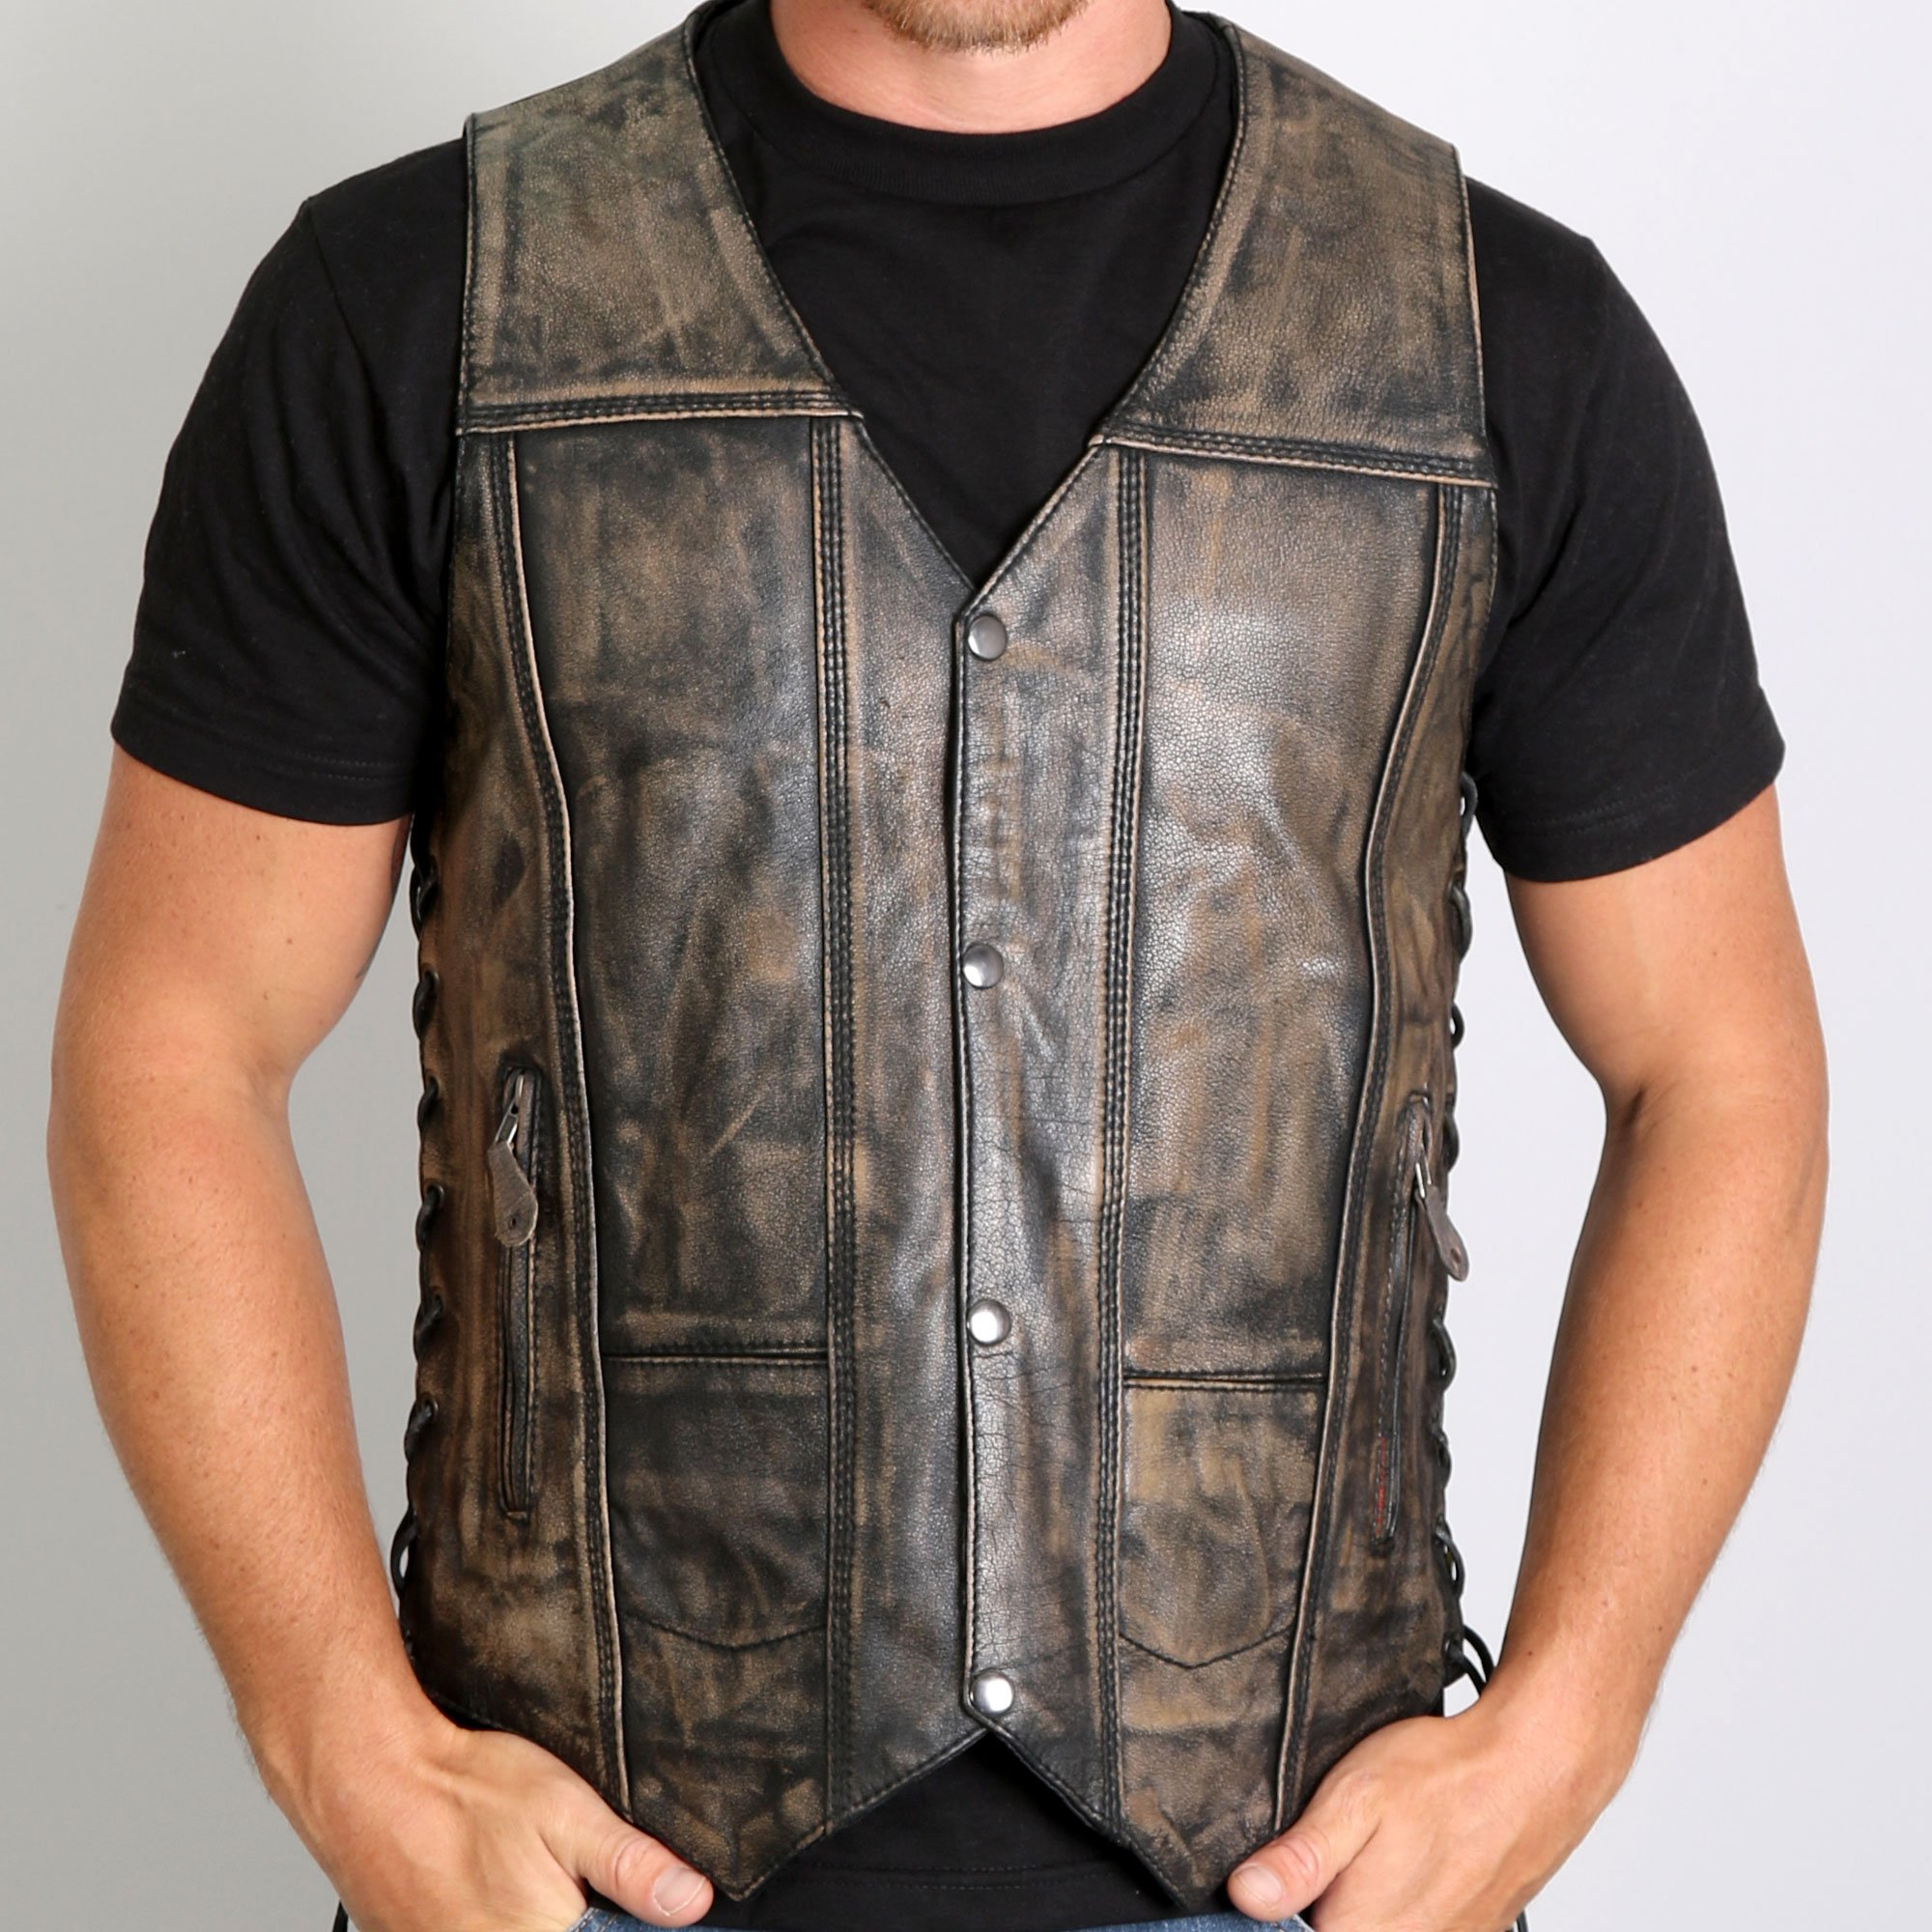 hot leathers menu0027s distressed brown leather vest w/ 2 concealed carry  pockets wlncvyl